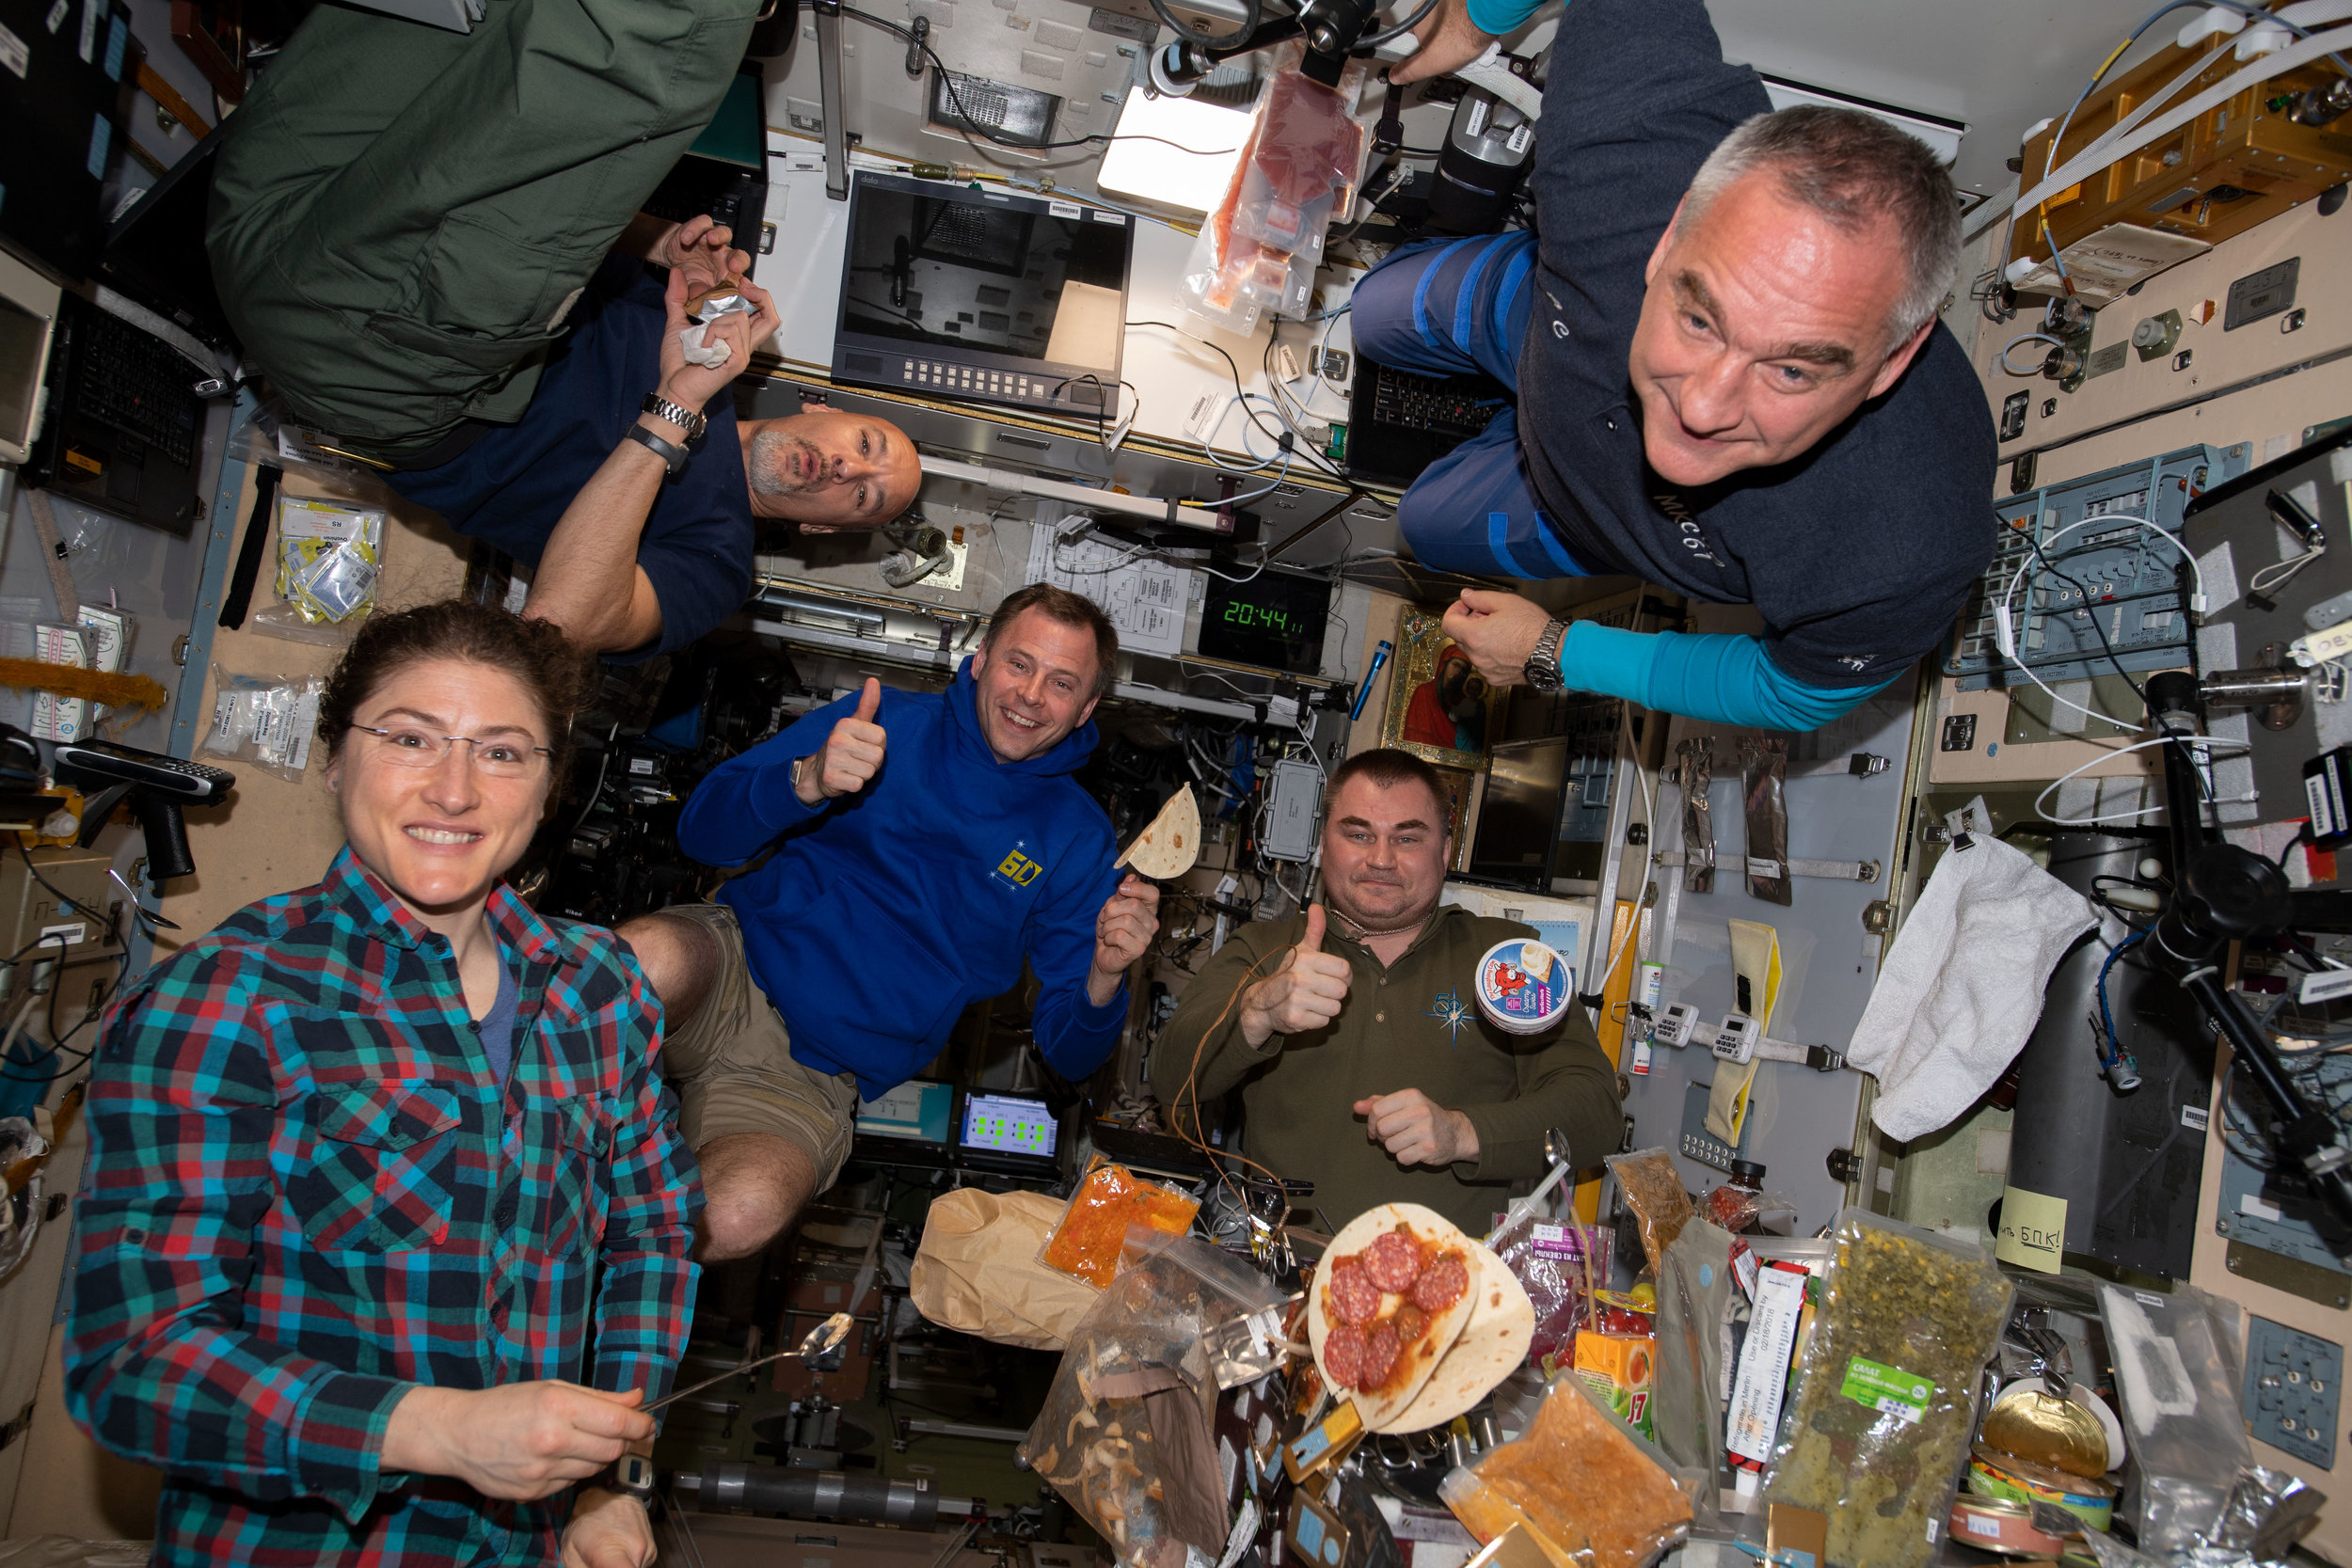 The Expedition 60 crew eats dinner together in the Zvezda module. From left are astronauts Christina Koch, Luca Parmitano and Nick Hague with cosmonauts Alexey Ovchinin and Alexander Skvortsov. Not pictured is astronaut Drew Morgan. Credit: NASA